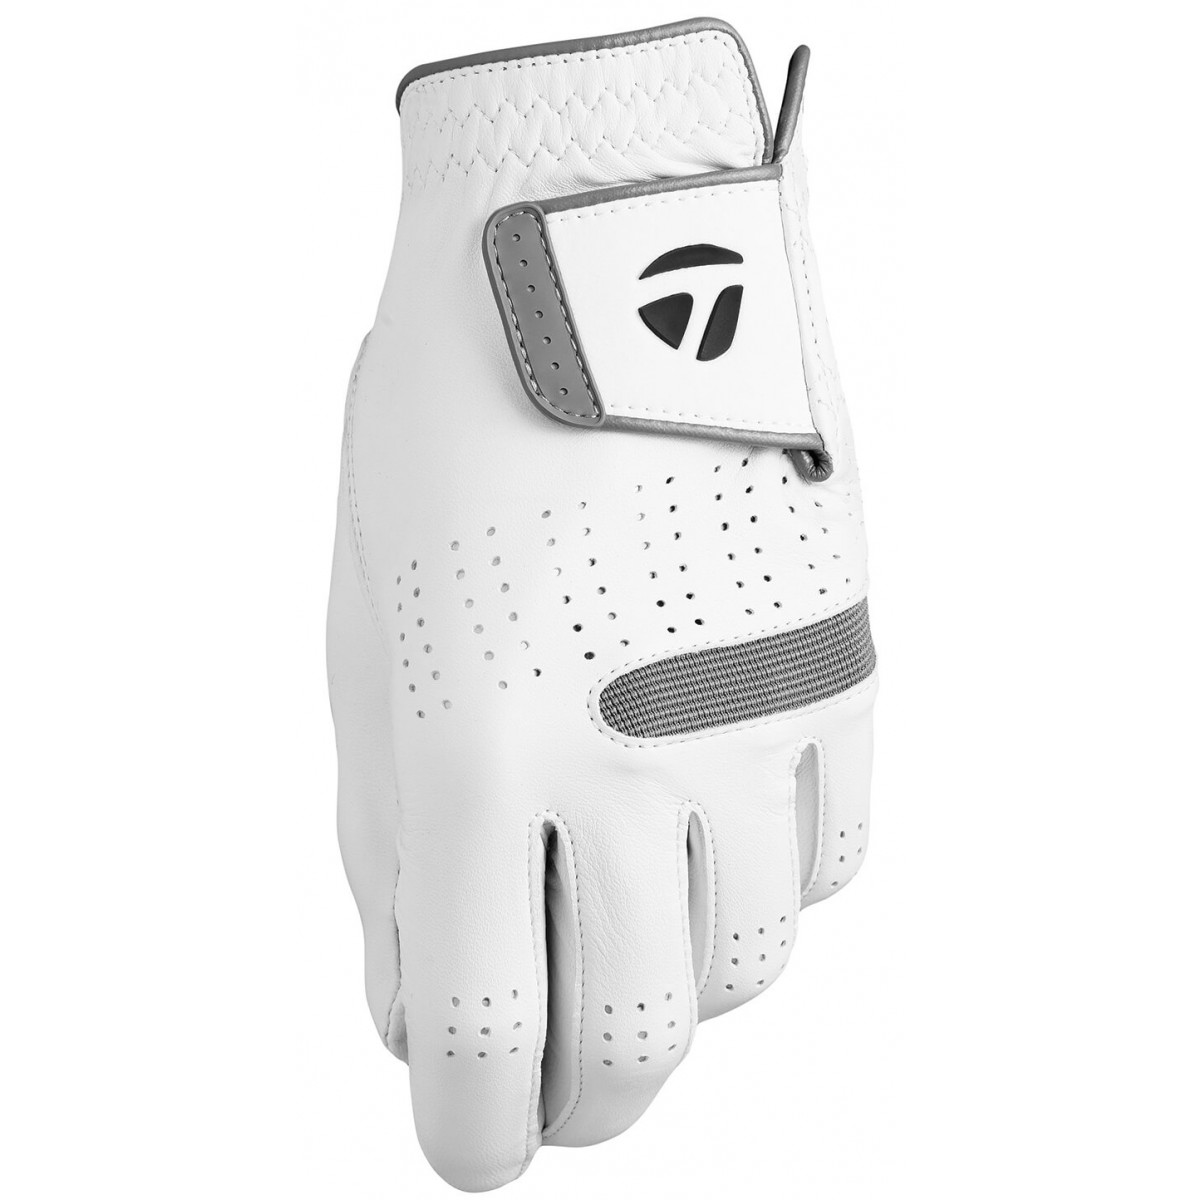 TaylorMade TP Flex Golf Glove - Men's LH Regular